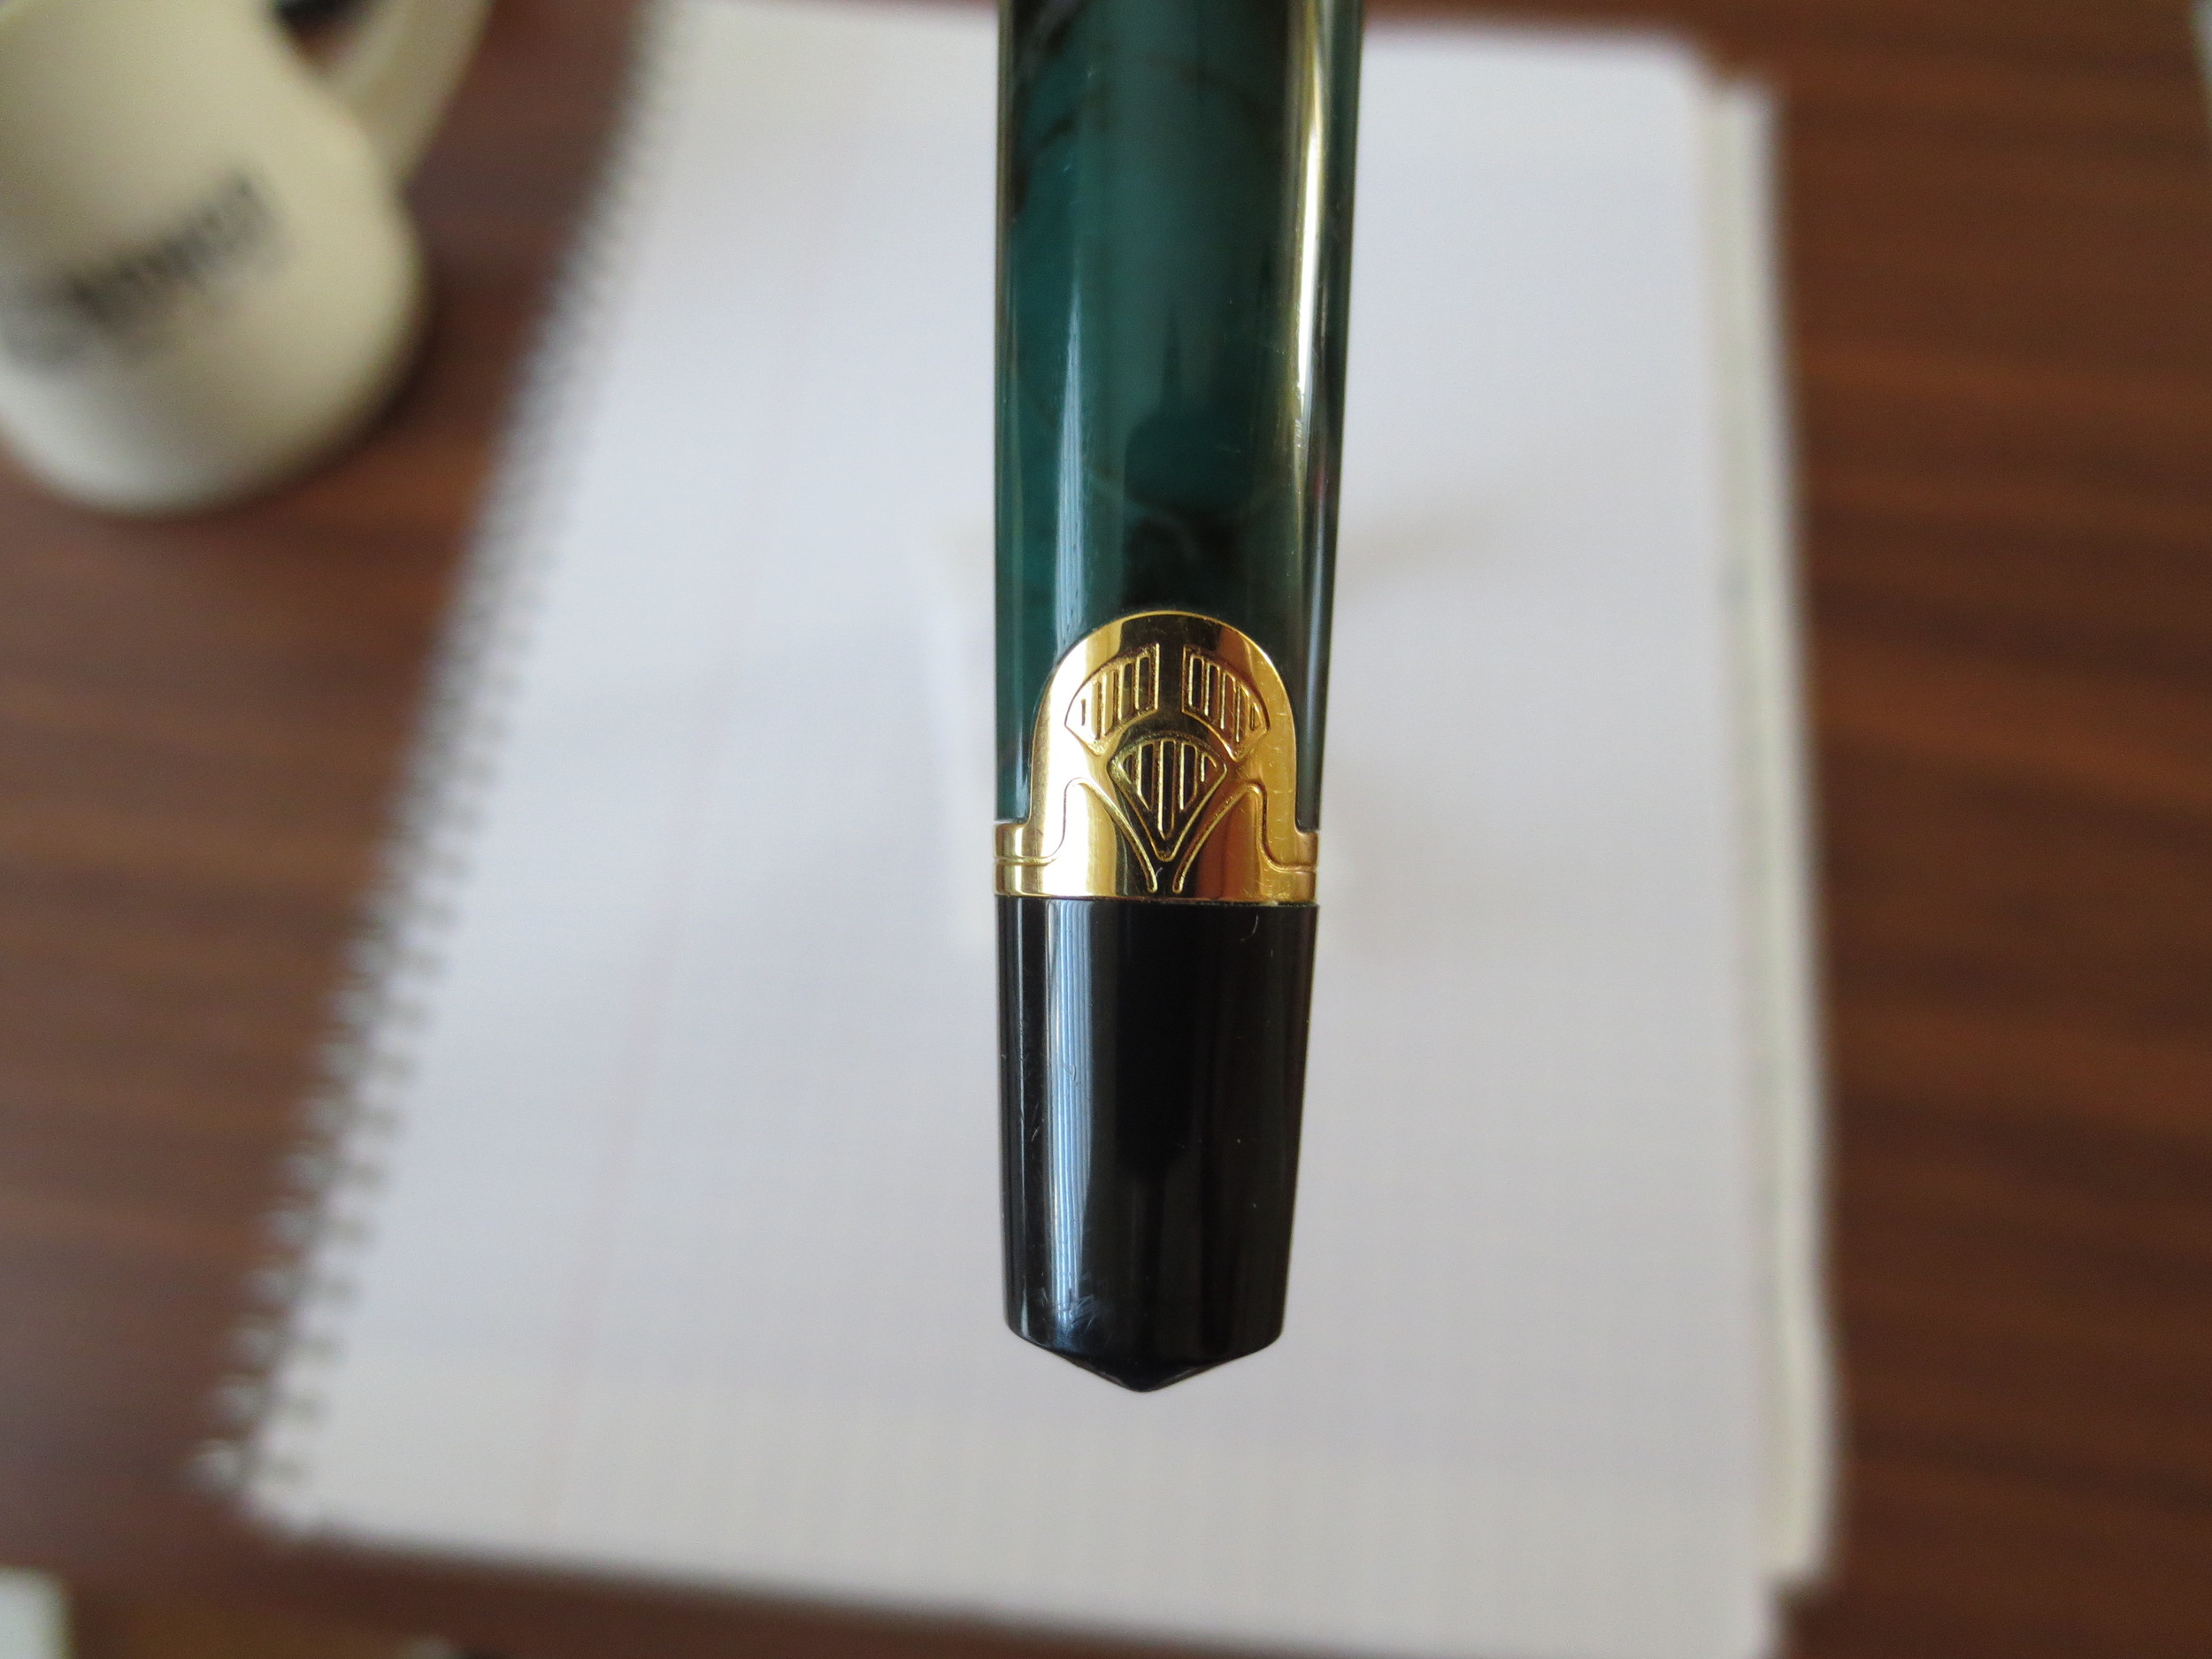 Note the art deco styling--something you don't see very often in budget pens anymore.